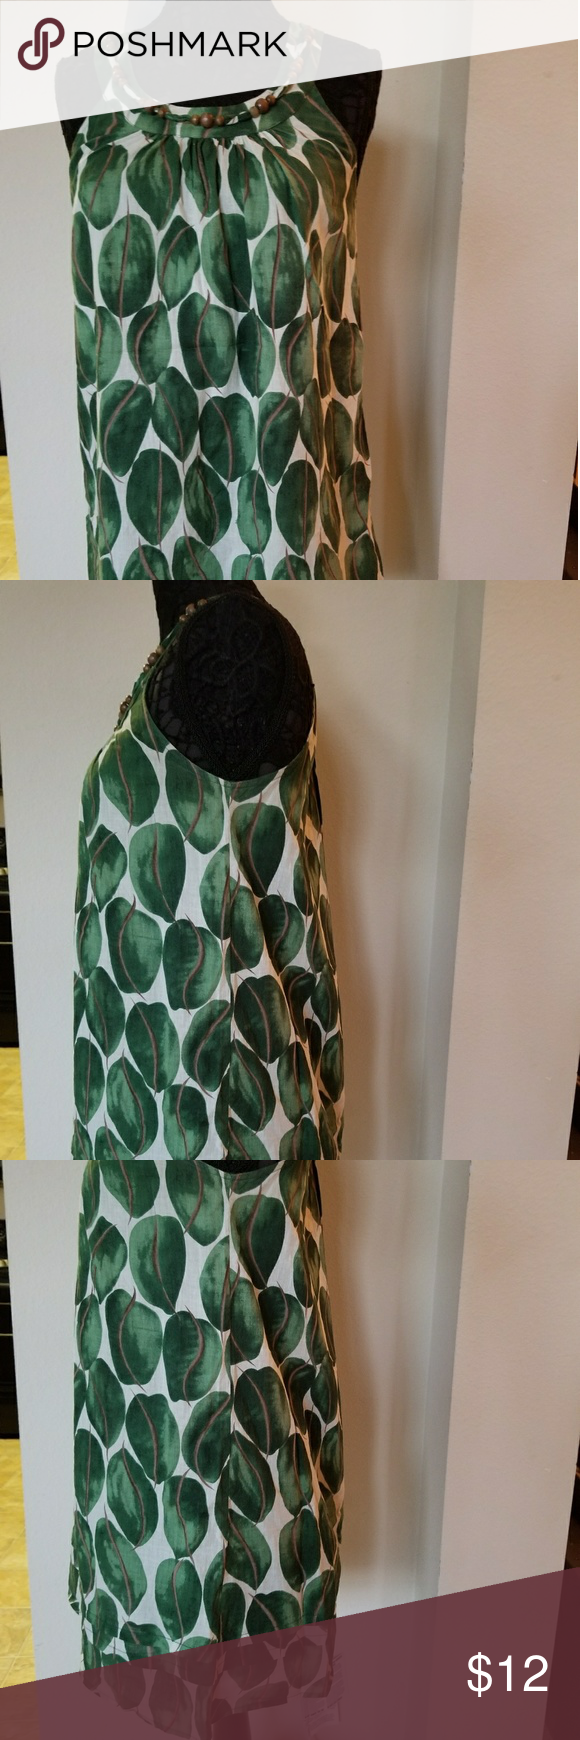 Forever21 Dress sizeM Green brown and white color 100% Cotton. Forever 21 Dresses